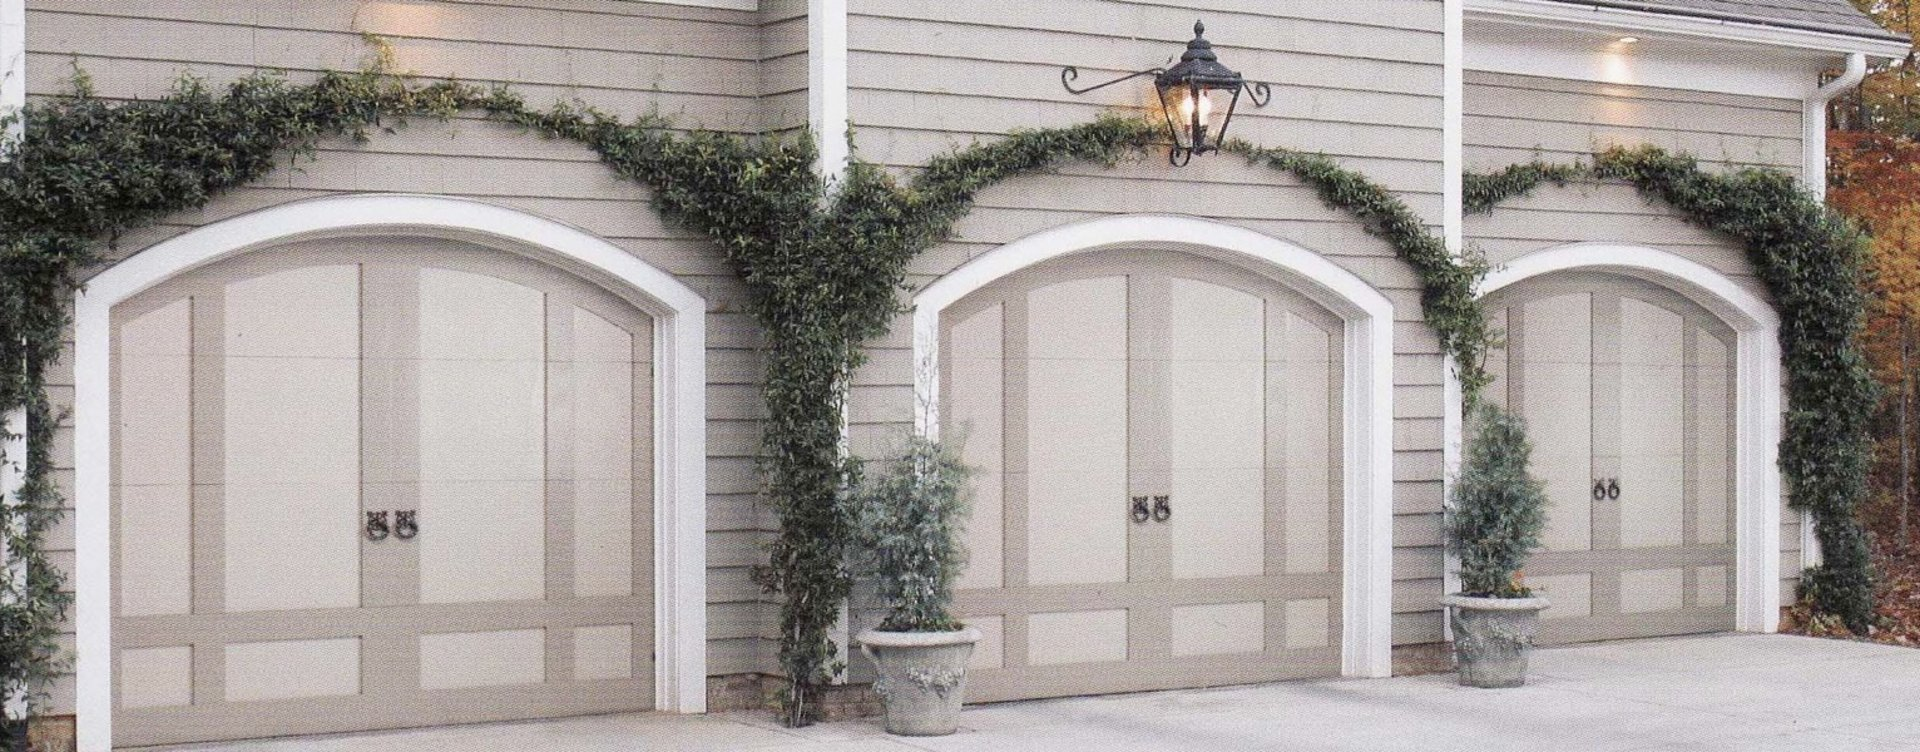 Ventura County Garage Door Company West Coast Overhead Door : Residential  Garage Door Company Serving Ventura County U0026amp; Santa Clarita Valley